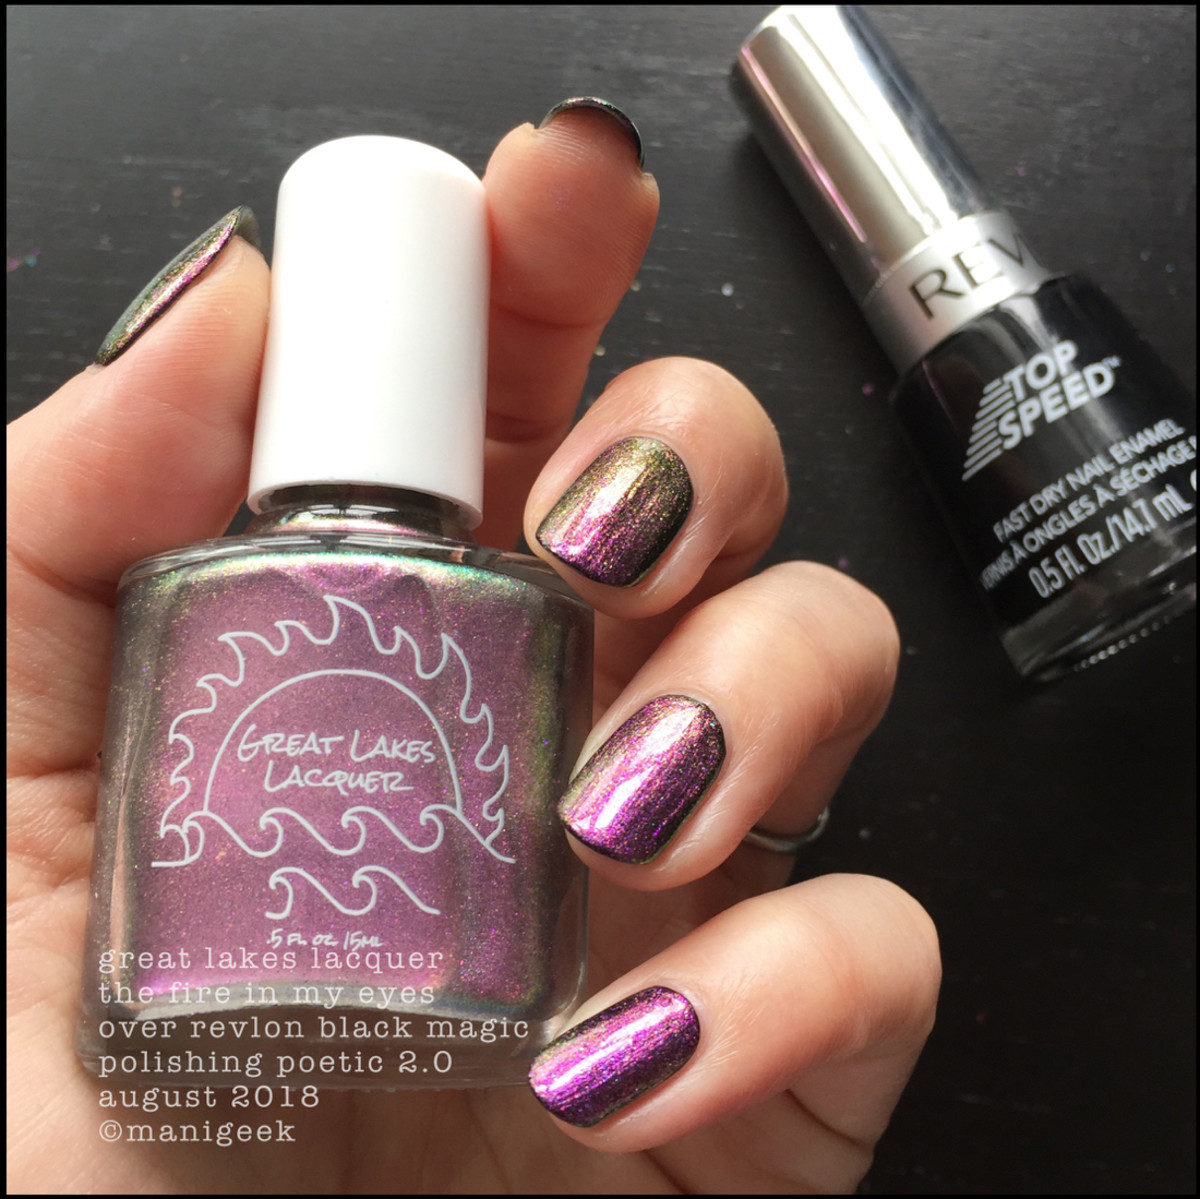 Great Lakes Lacquer The Fire In My Eyes over black 2 _ Great Lakes Lacquer Polishing Poetic 2.0 Swatches & Review